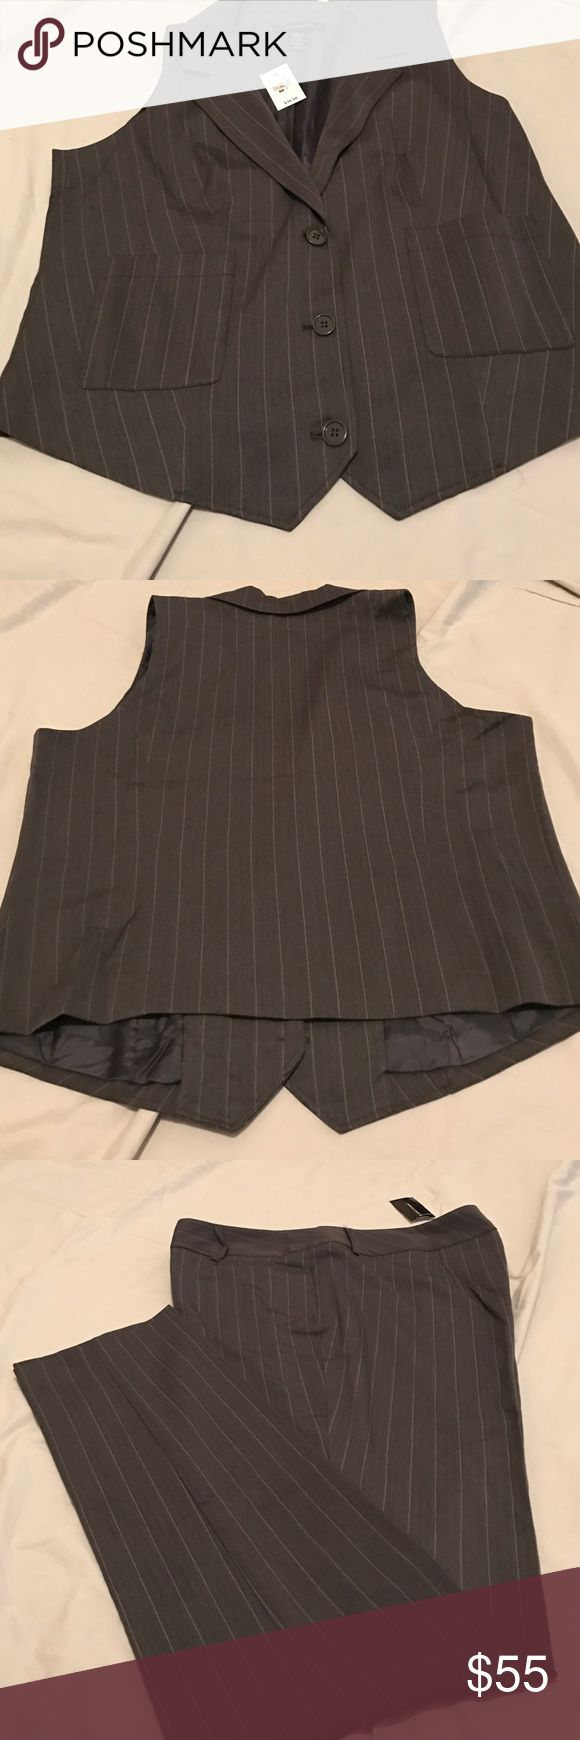 Suit Grey pinstriped suit, pants have front pockets. The vest has front pockets with 3 buttons down the front. Ashley Stewart Other